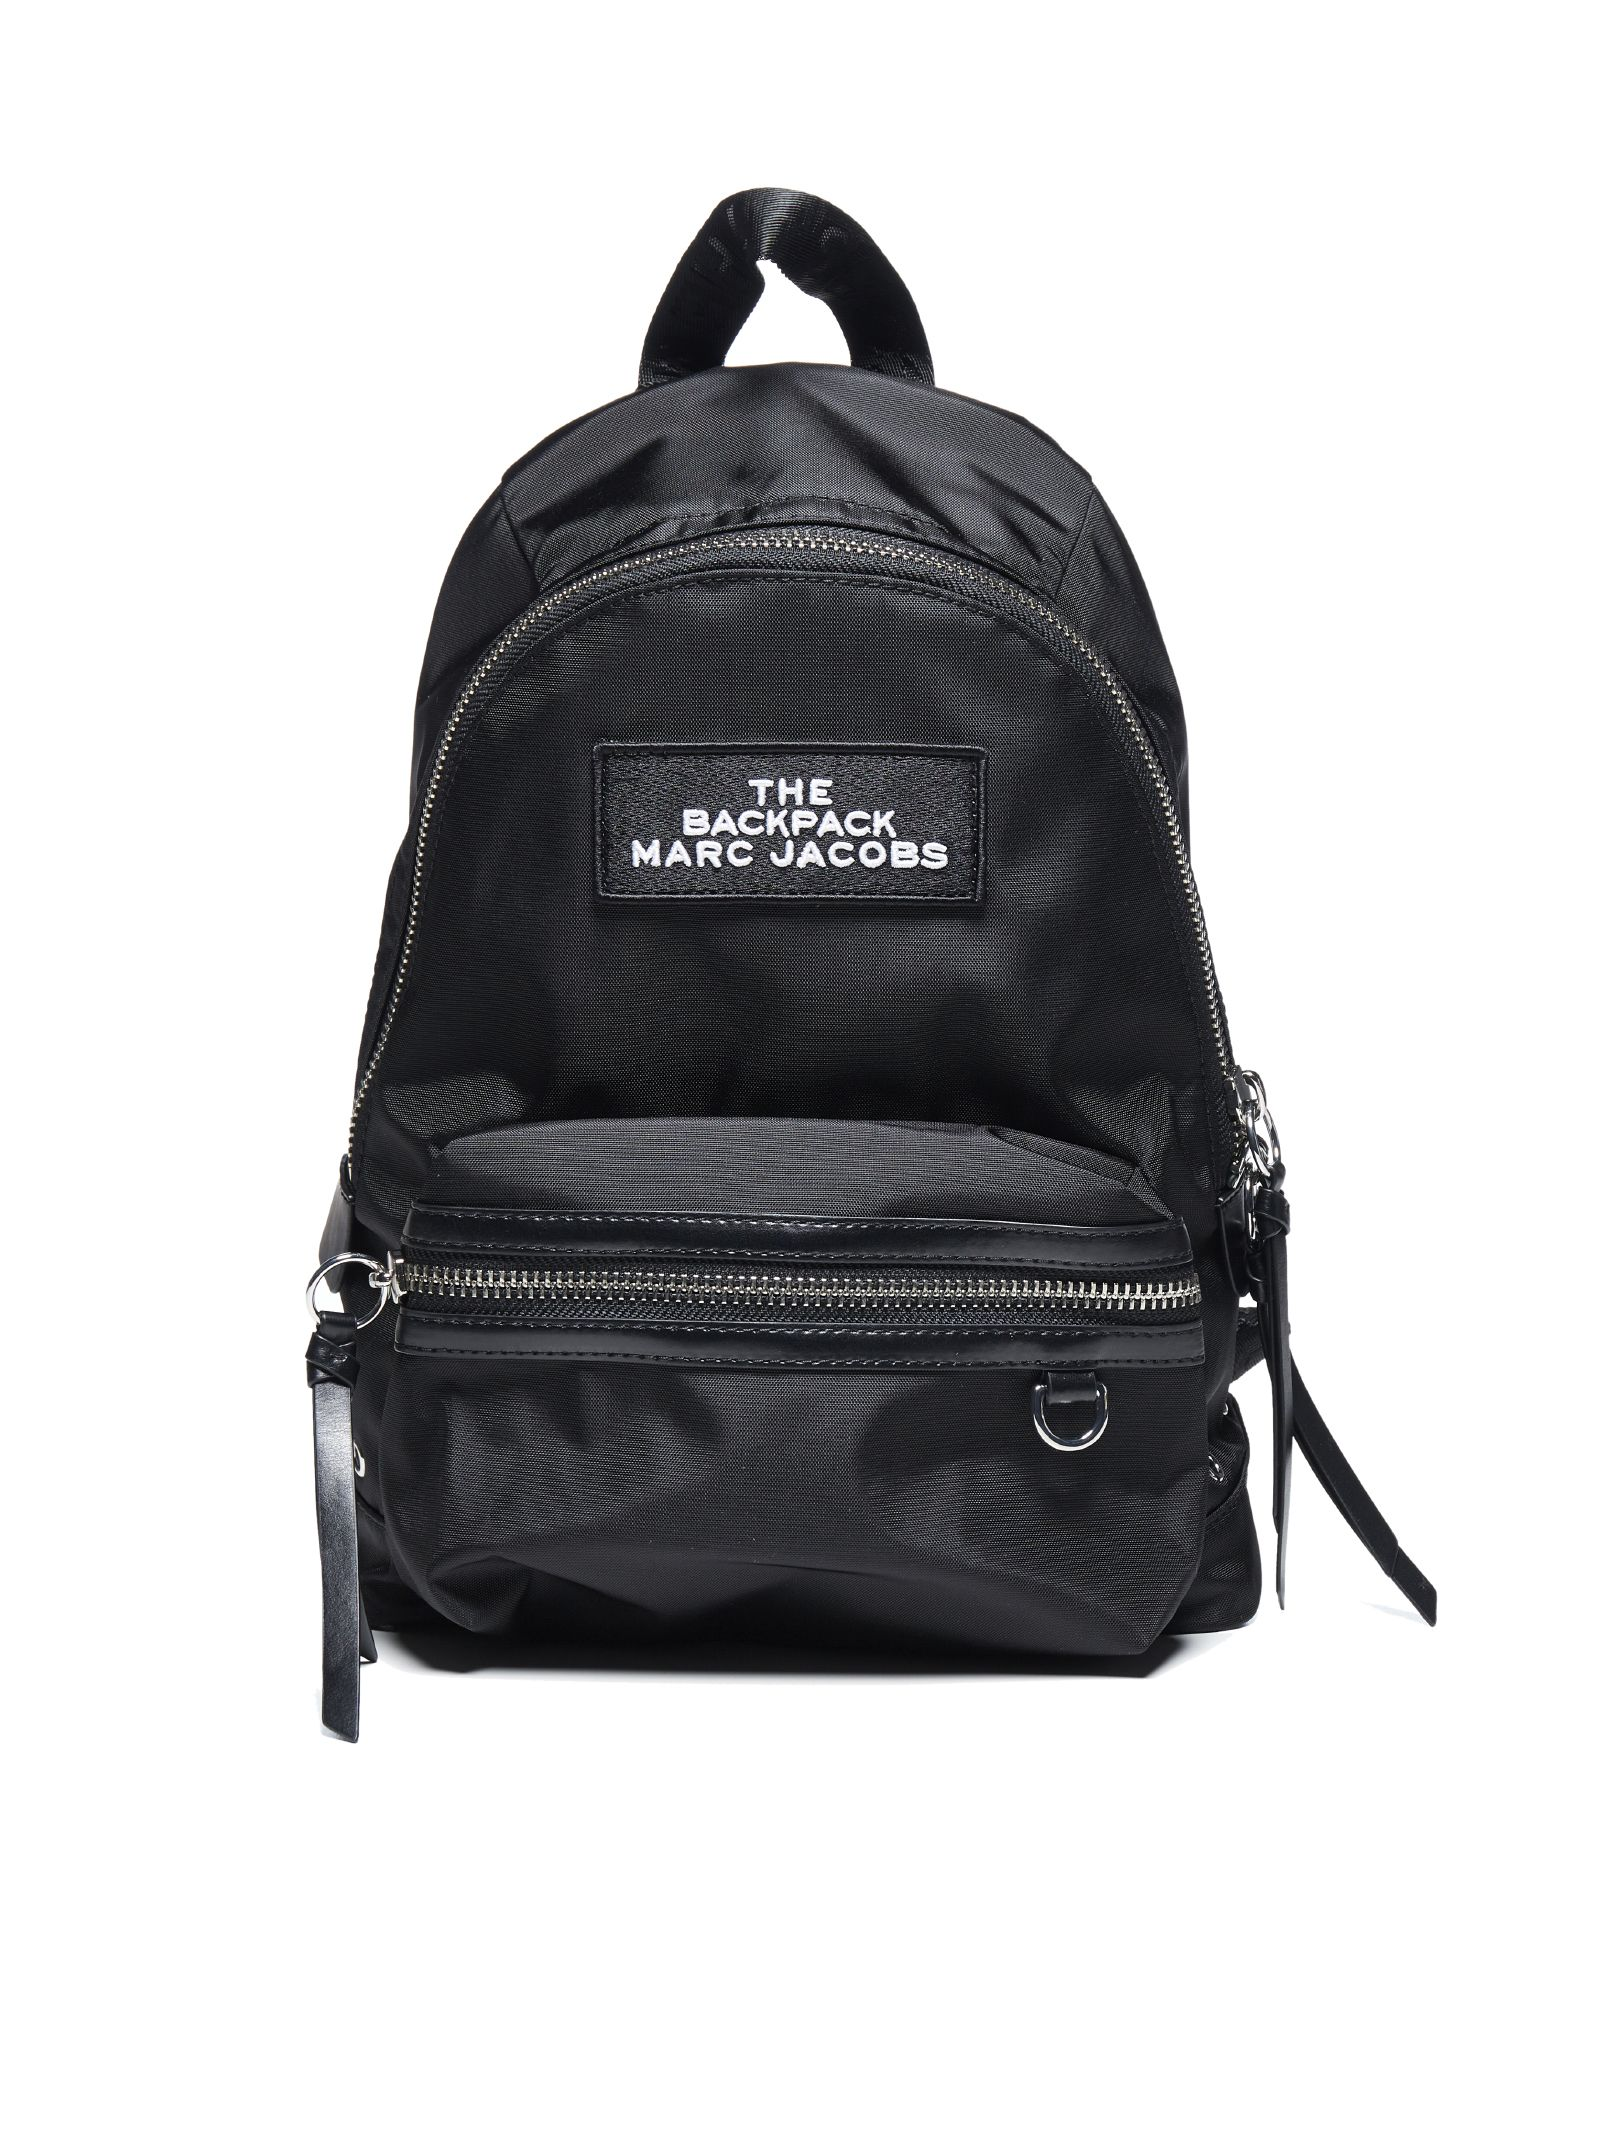 4b9b526533 Marc Jacobs Marc Jacobs Backpack - Black - 10974074 | italist